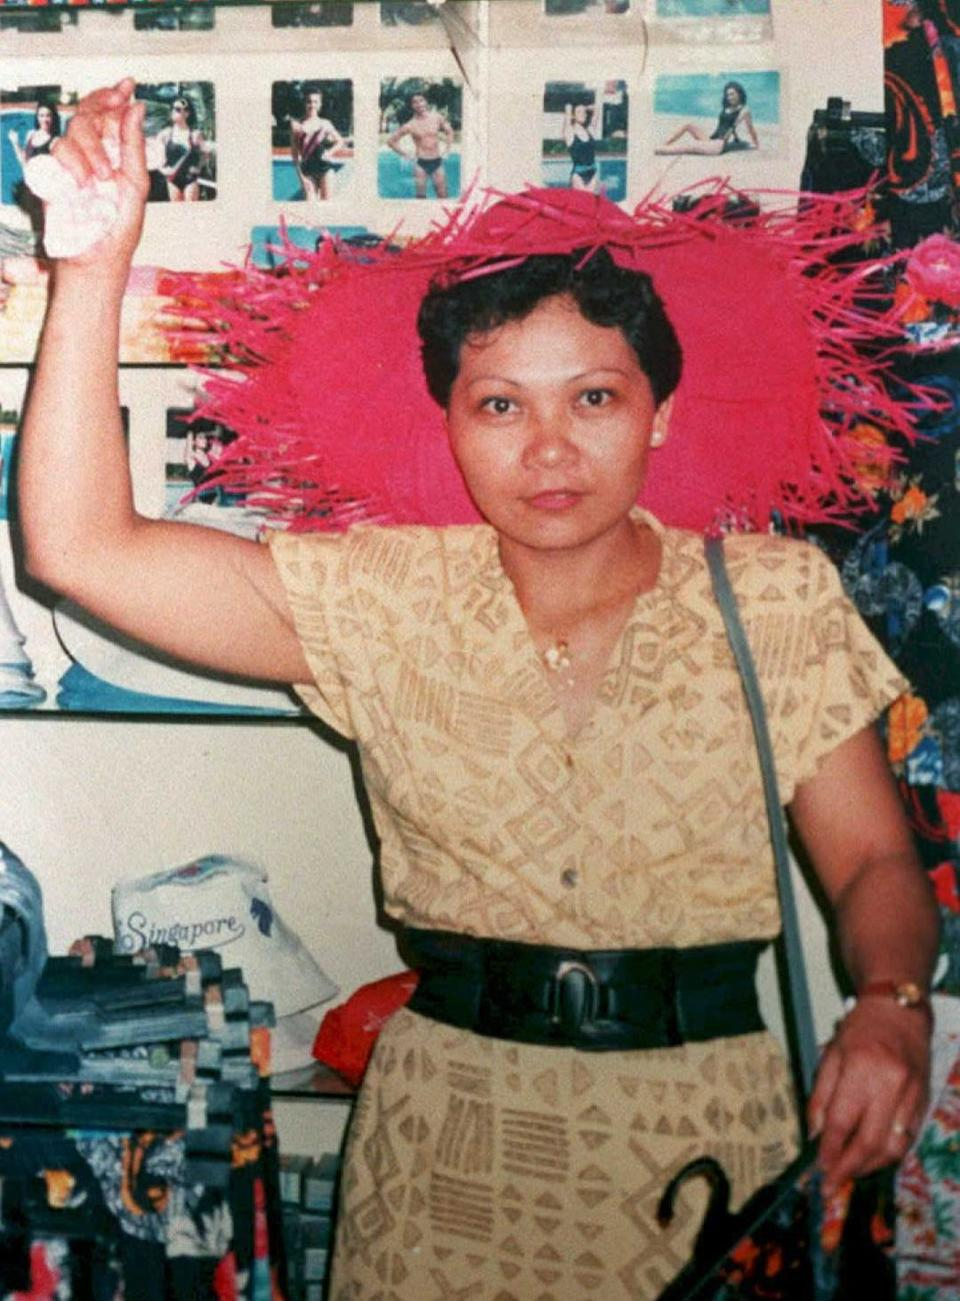 FILE PHOTO:  Filipina maid Flor Contemplacion, shown here in an undated photo, was hanged in Singapore, 17 March, according to a prison official.  Efforts by the Philippine government, including an appeal by President Fidel Ramos for clemency, were rejected by Singapore President Ong Teng Cheong. Contemplacion was found guilty by a Singapore court of murdering another maid and a four-year-old boy in 1991. (Photo: STR/AFP via Getty Images)